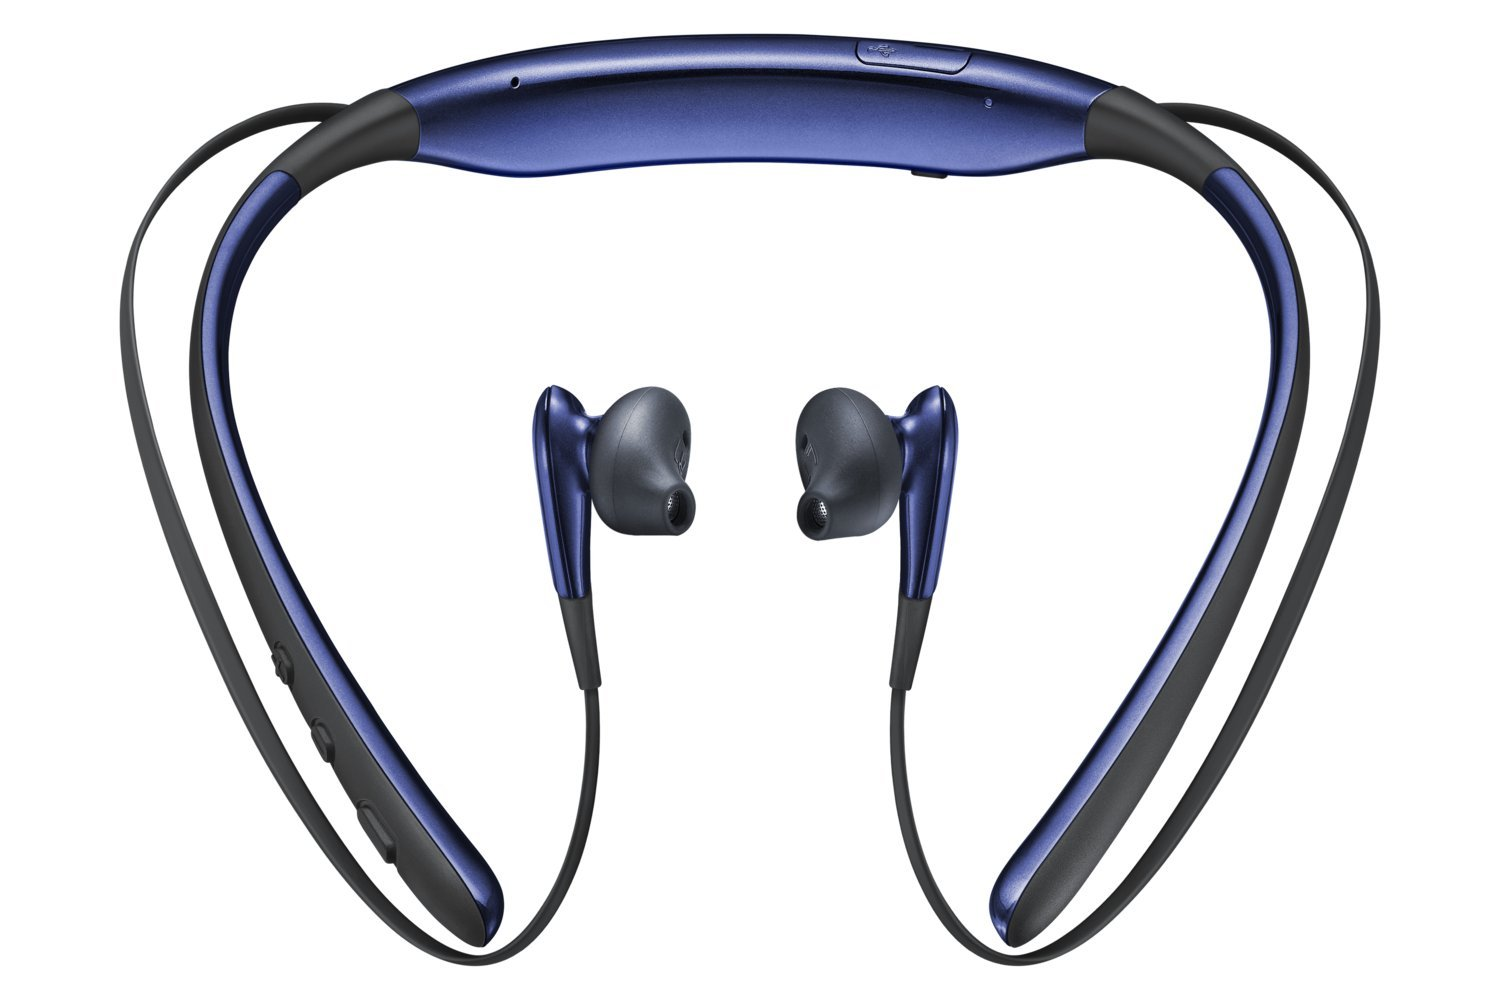 Zip Up Headphones Amazoncom Samsung Level U Bluetooth Wireless In Ear Headphones